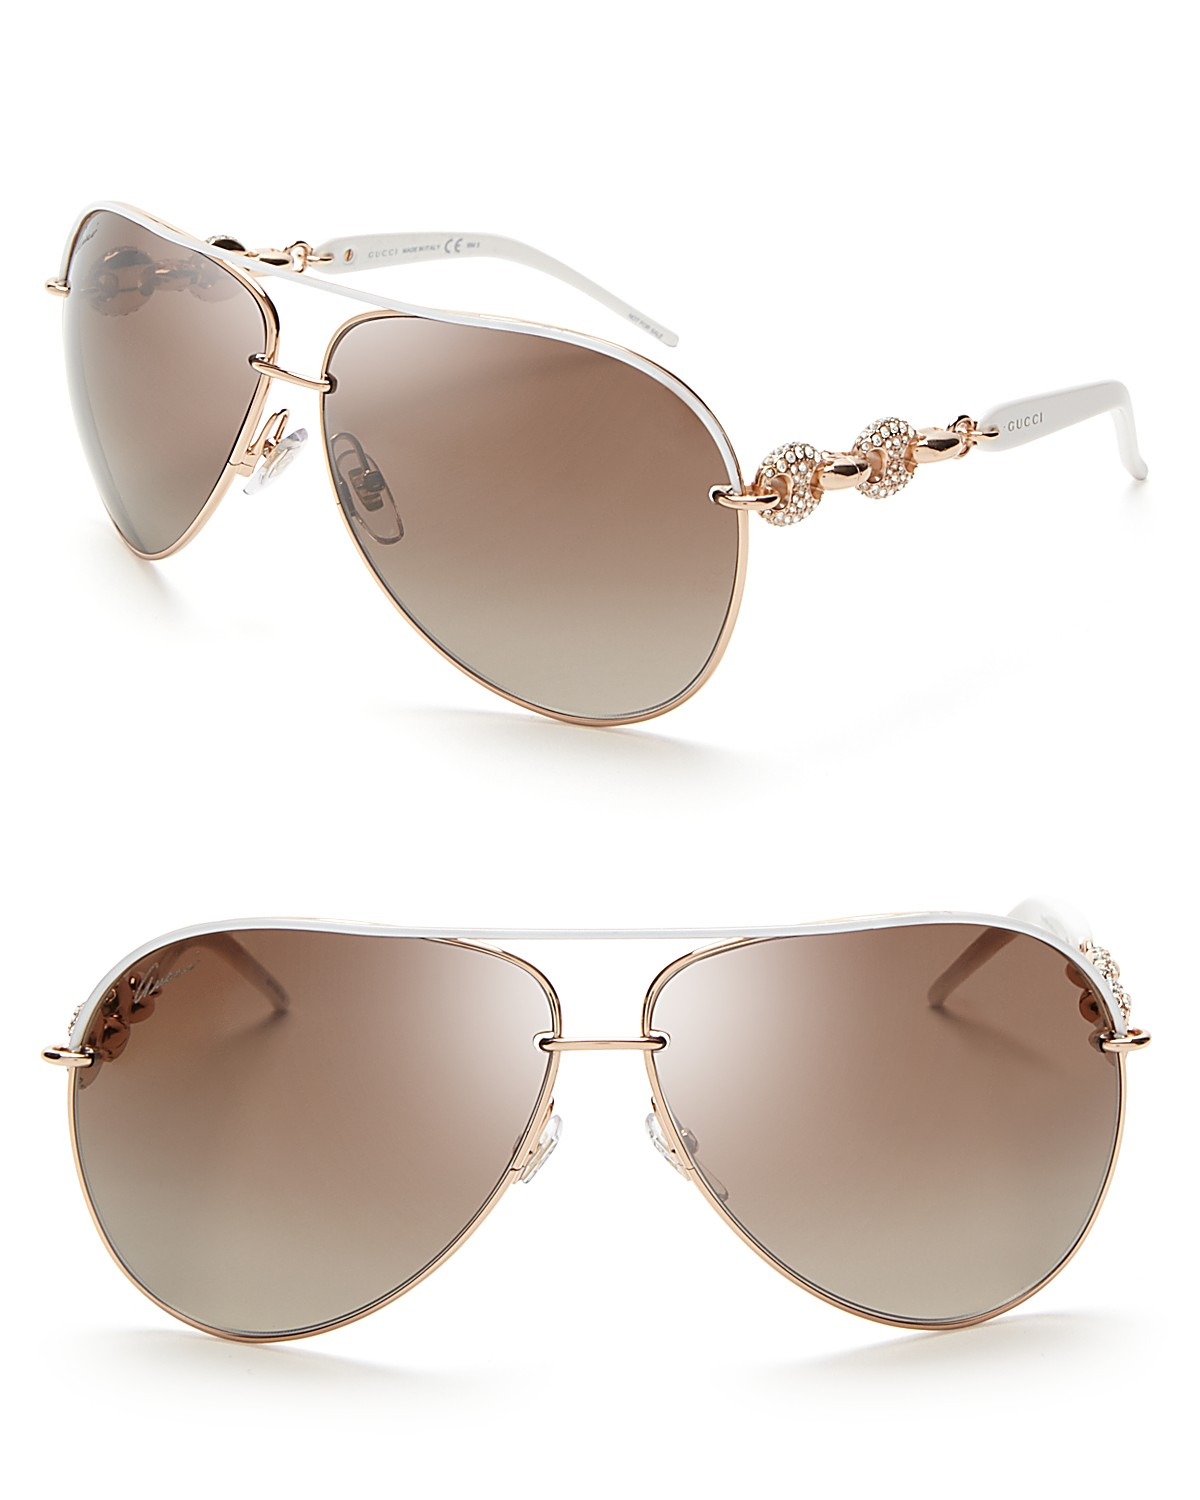 Gucci Chain Link Aviator Sunglasses with Crystals | Bloomingdale's